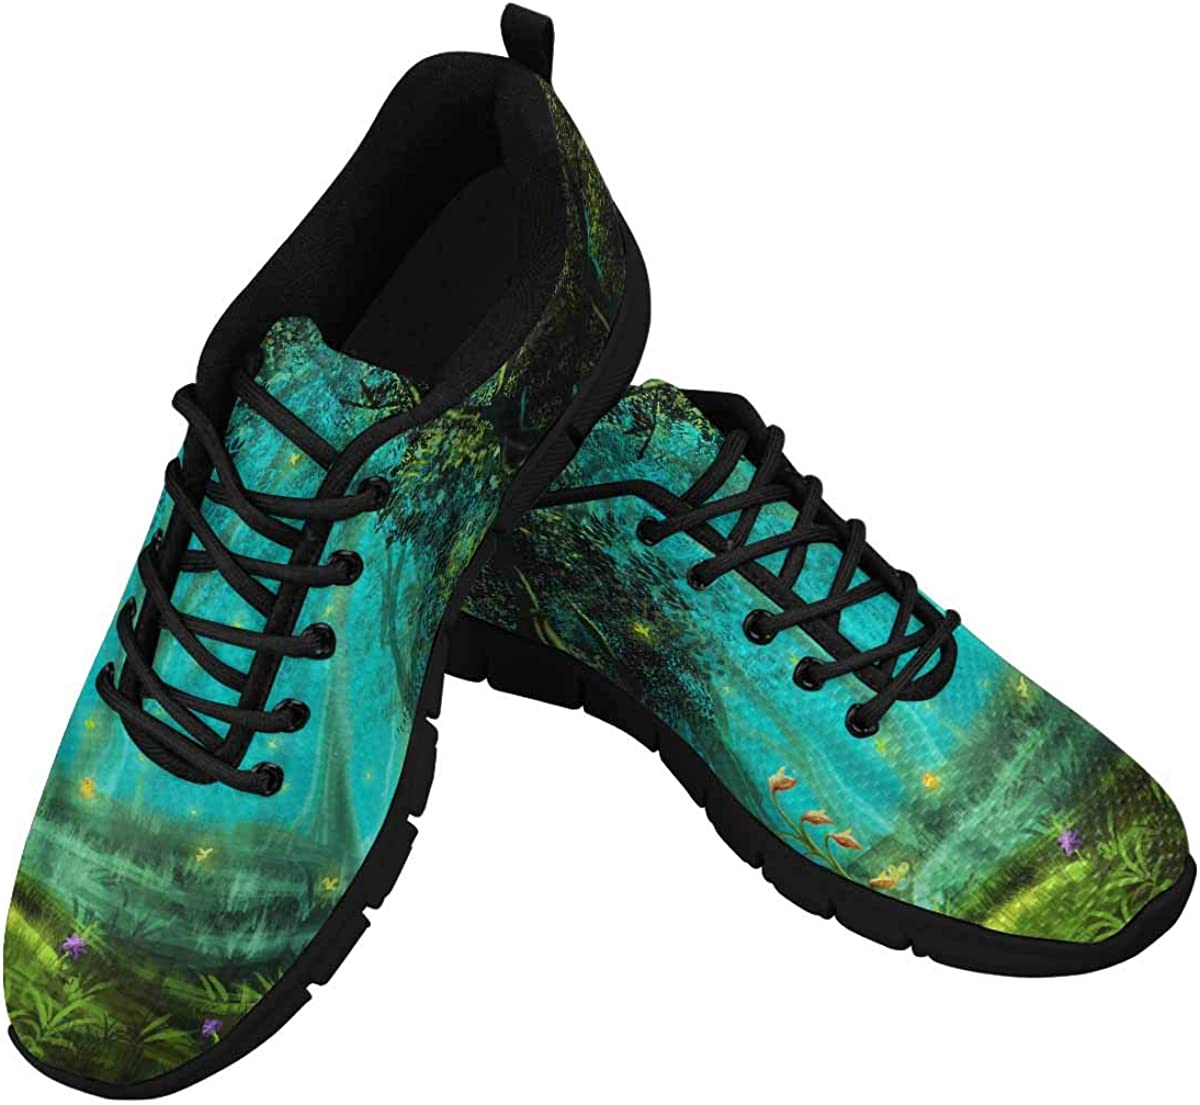 InterestPrint Fantasy Fairy Forest Green Women's Sneaker Lace Up Running Comfort Sports Shoes